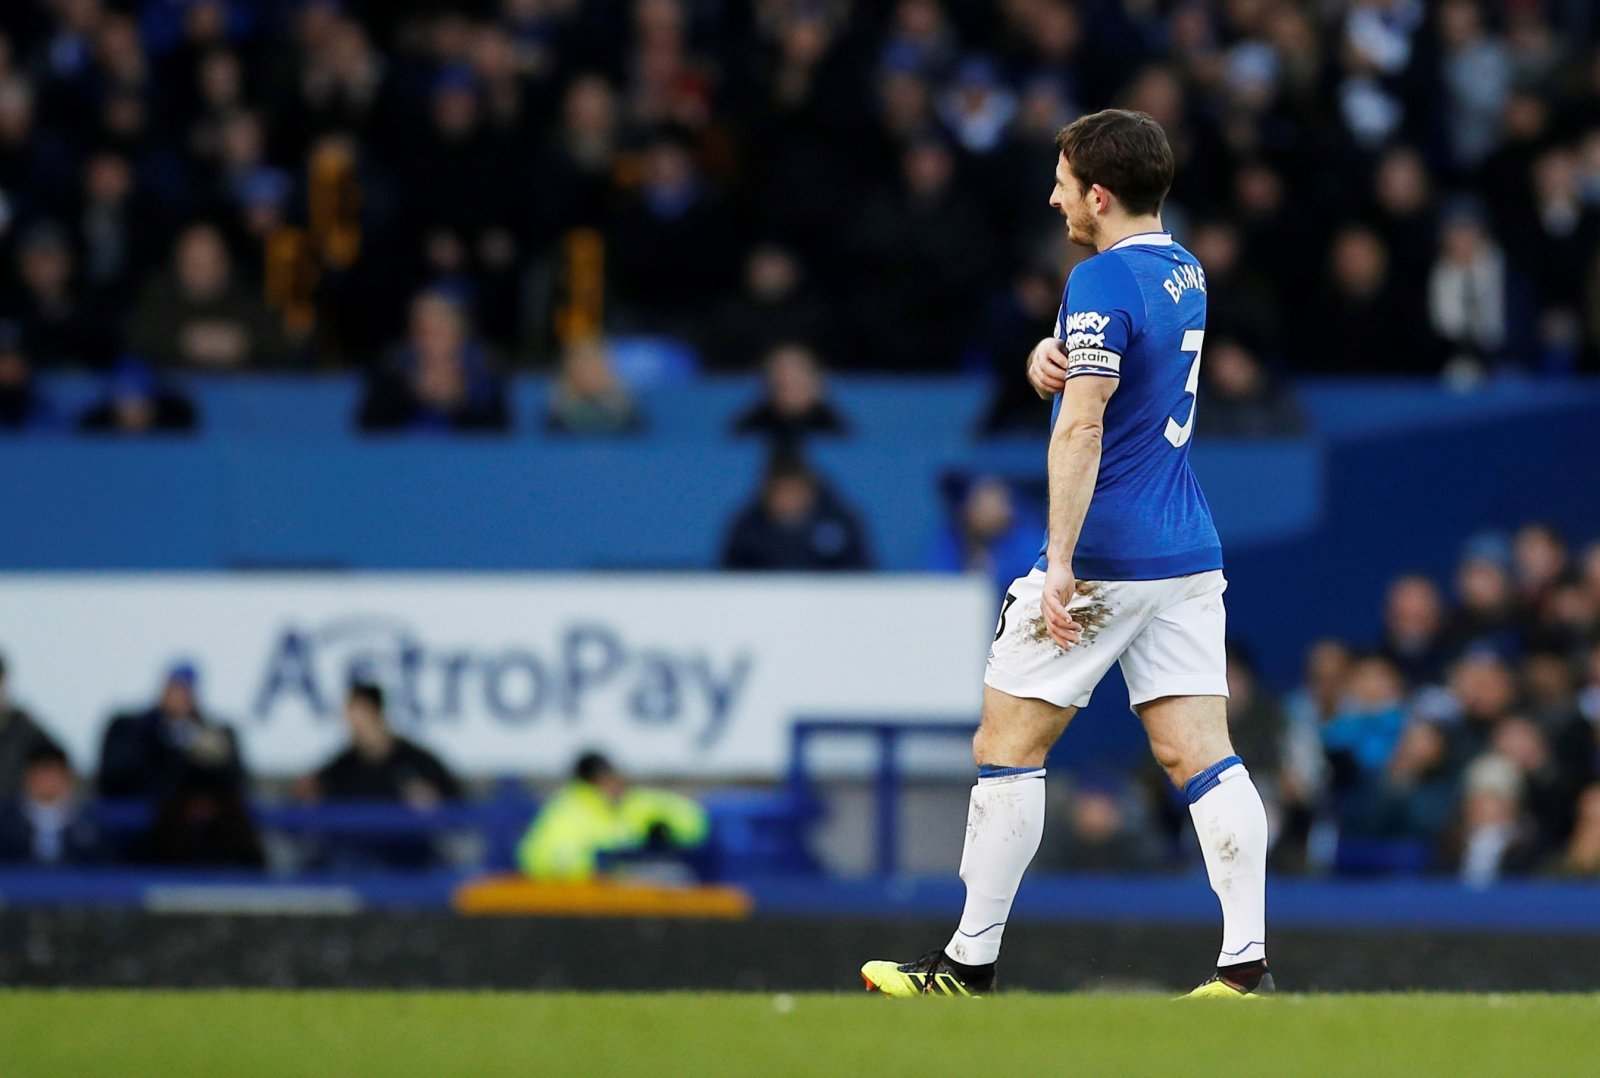 Everton: Leighton Baines could make the bench against Aston Villa